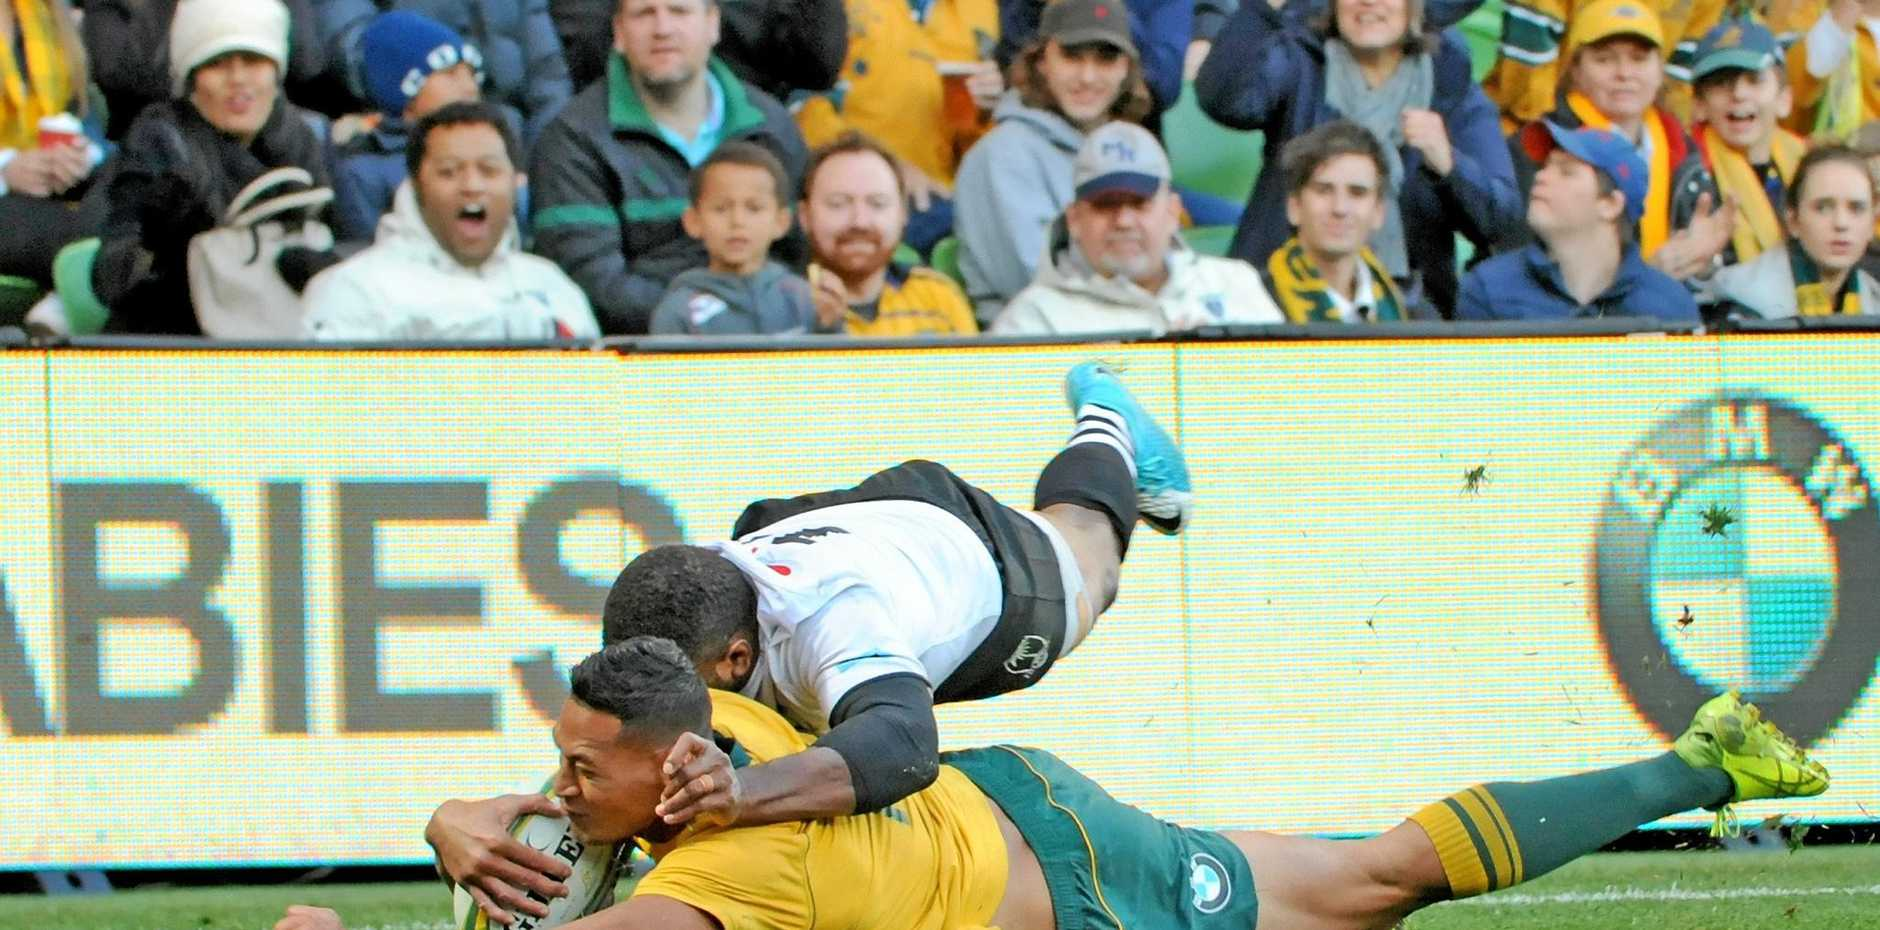 TRY TIME: Wallabies fullback slides in for a try in his side's 37-14 Test victory over Fiji.